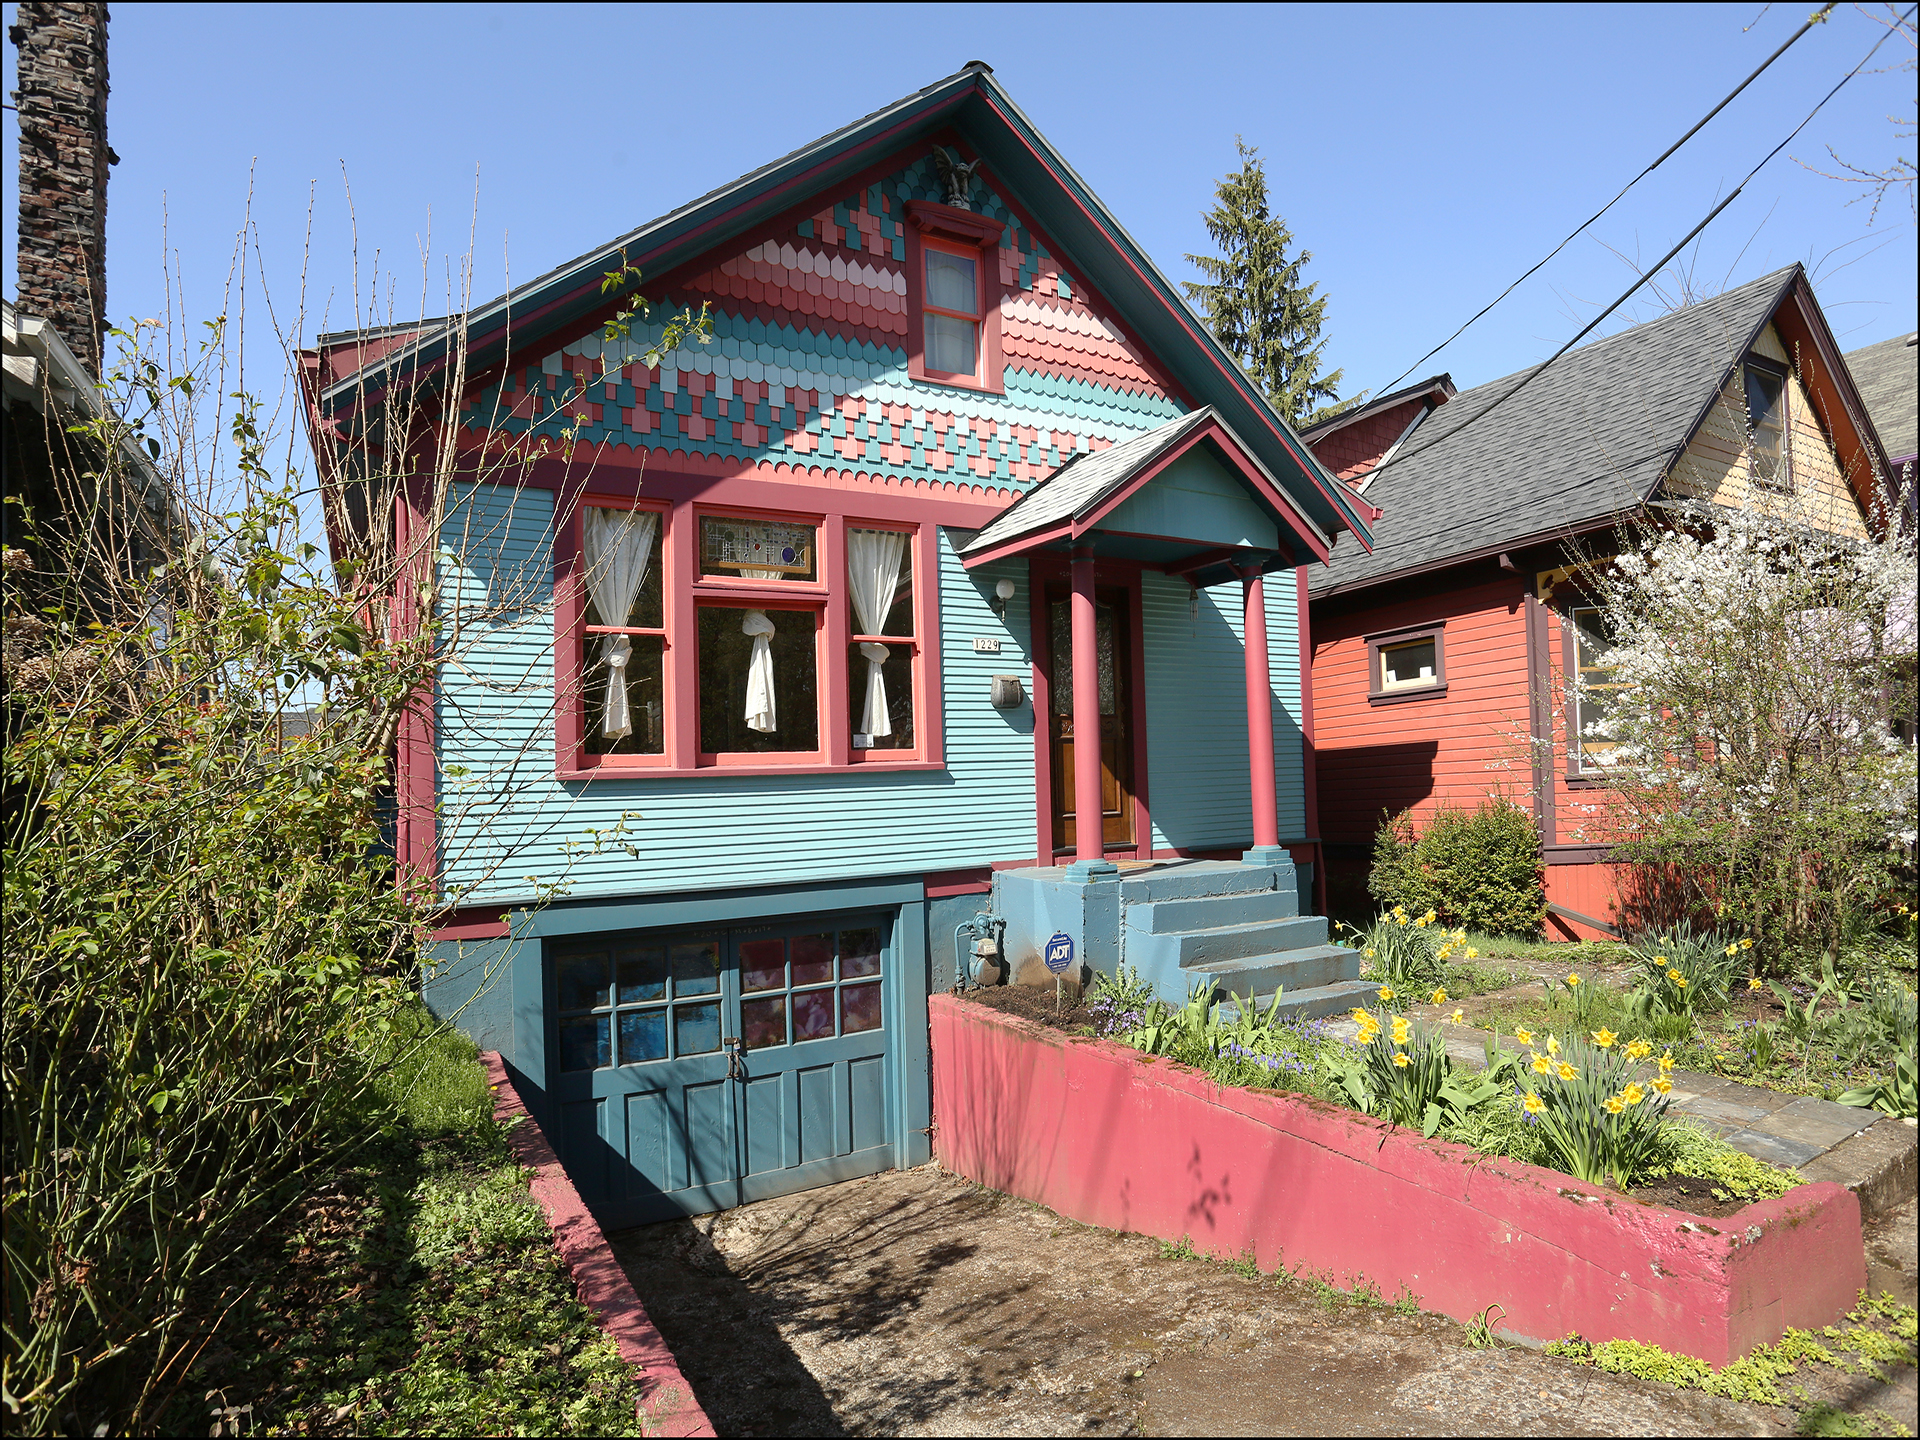 1229 SE 34th Ave.  - Lovely Victorian in Sunnyside.  $519,000 -  SOLD!